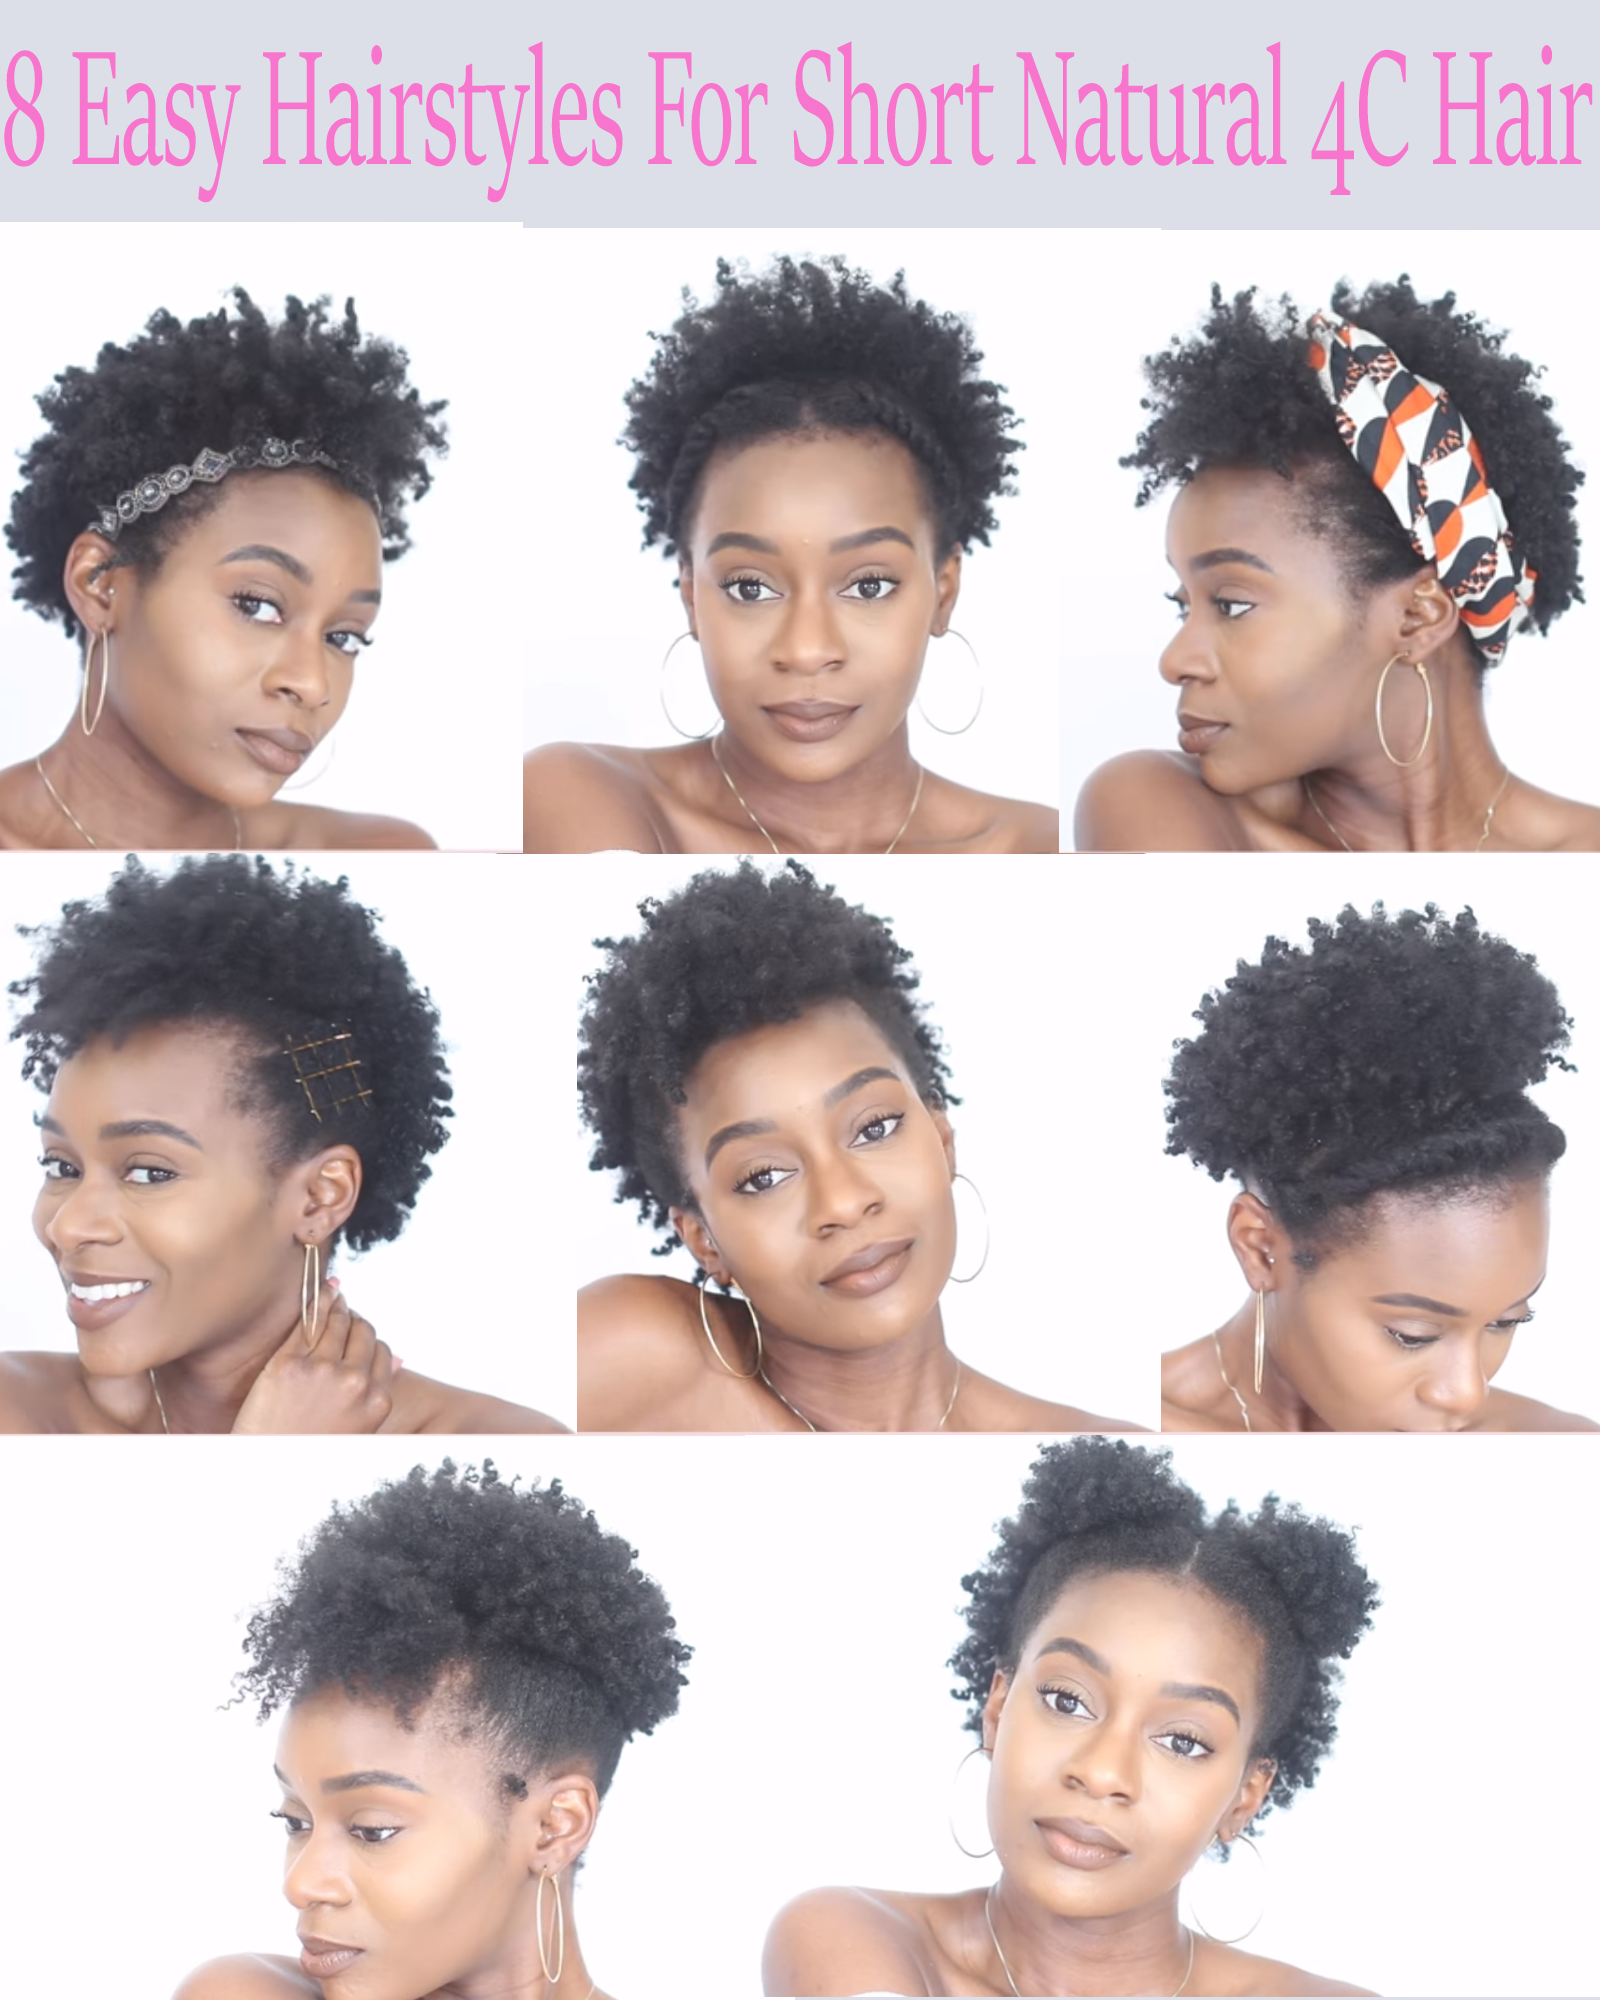 8 easy protective hairstyles